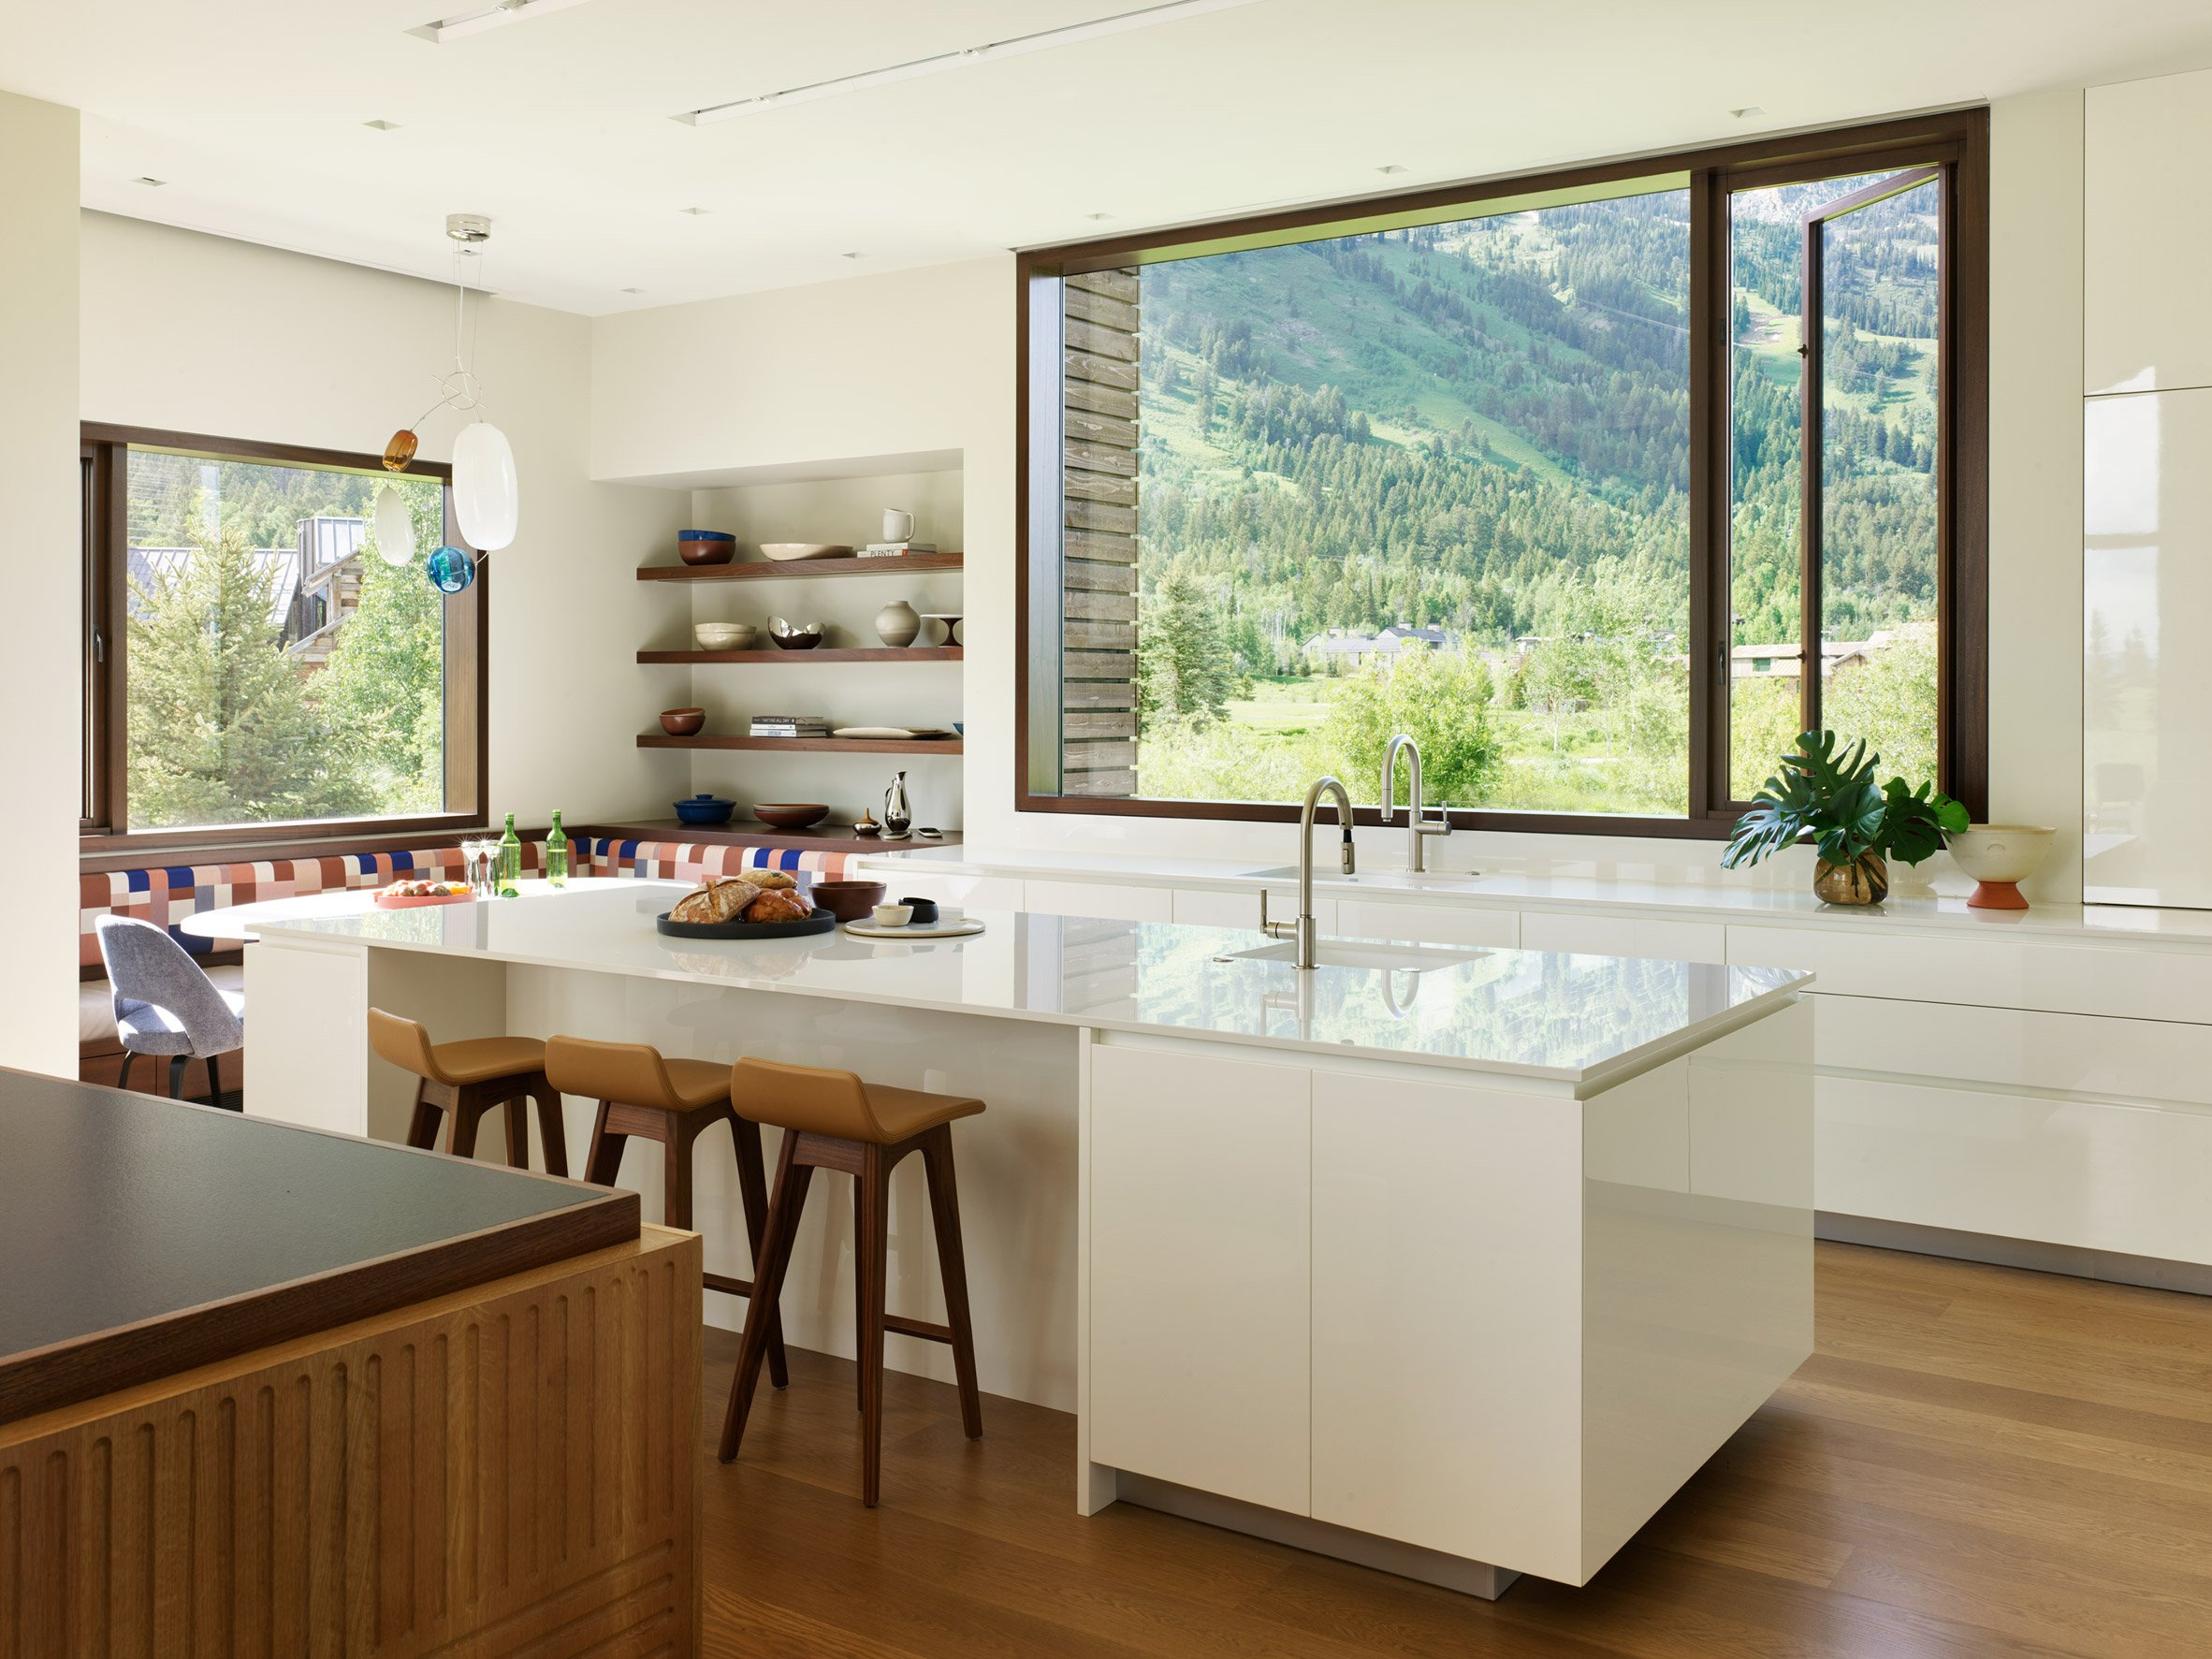 Lone Pine Residence by CLB Architects